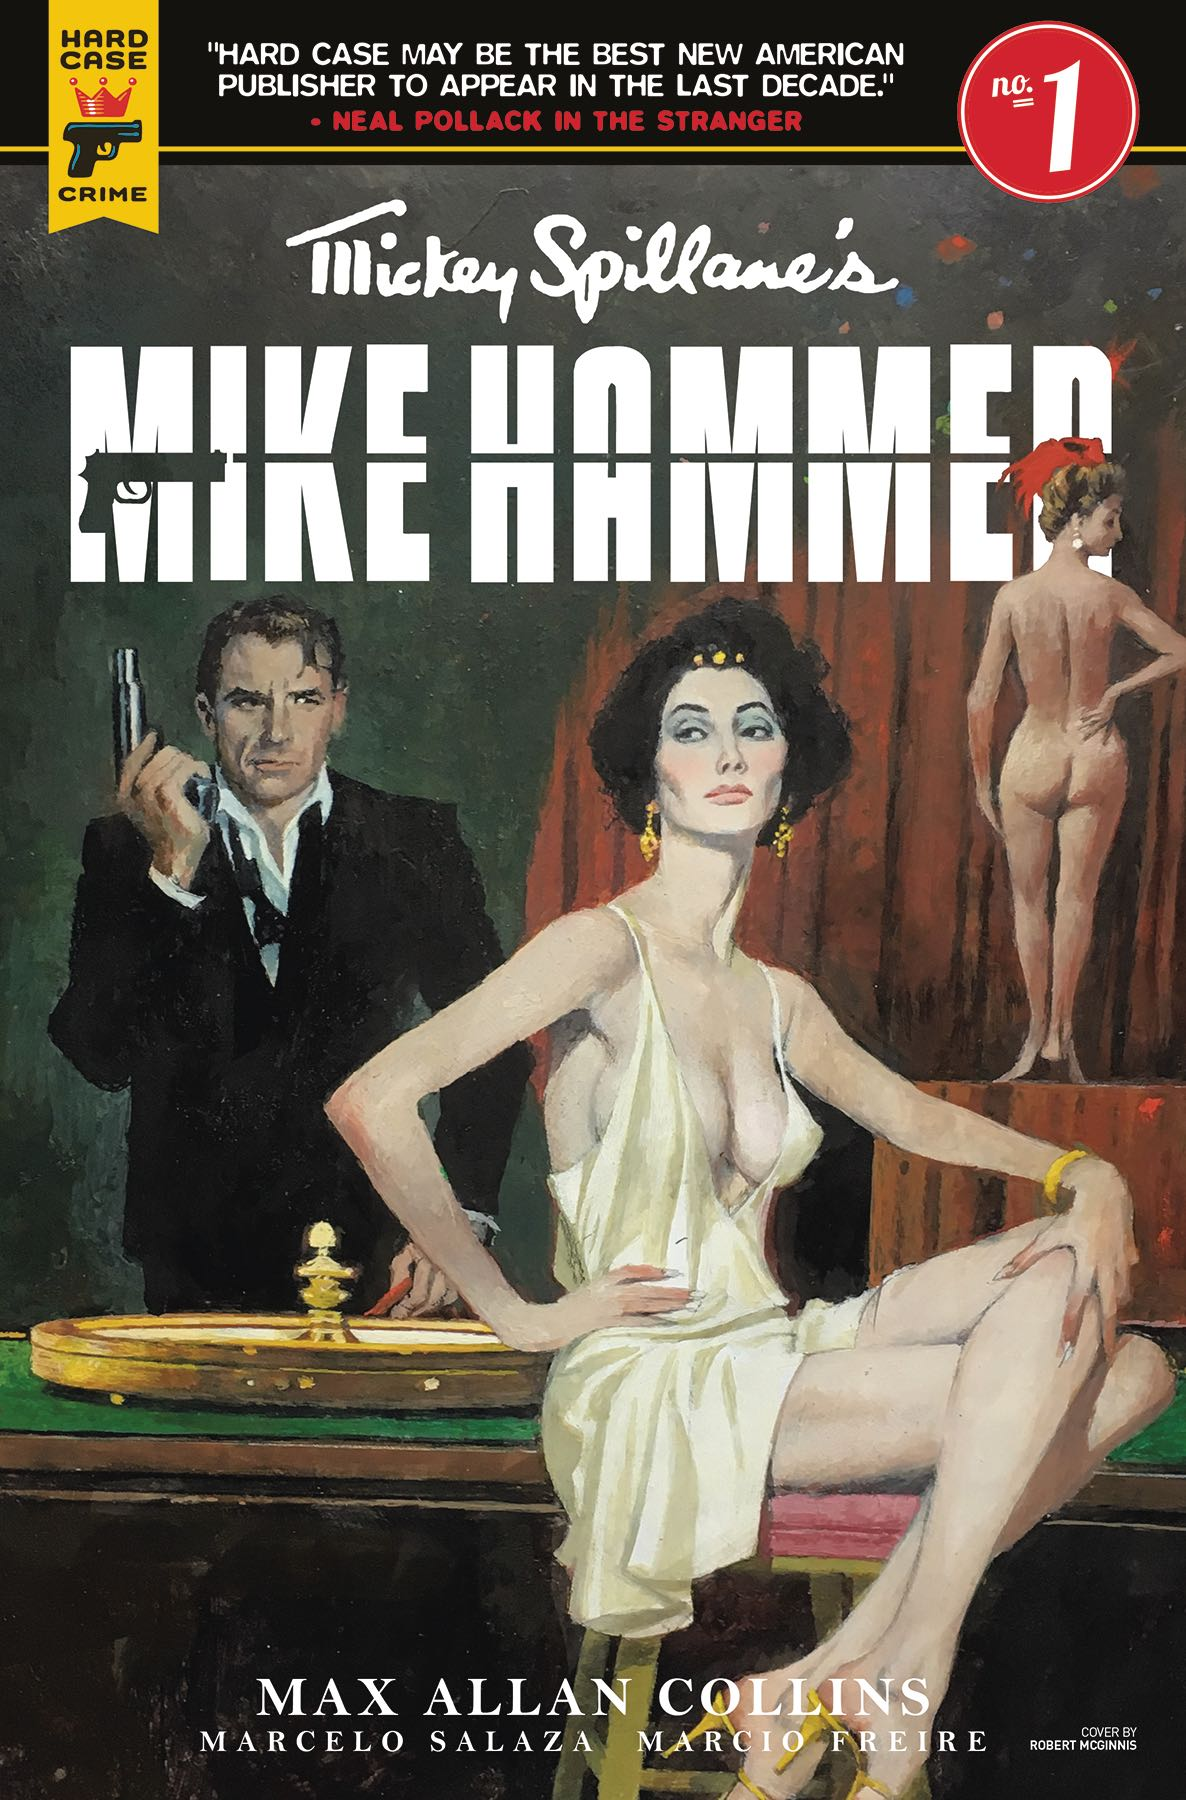 Robert McGinnis 67 Best Book Covers, Illustrations And Movie Posters From A Pulp Icon 2